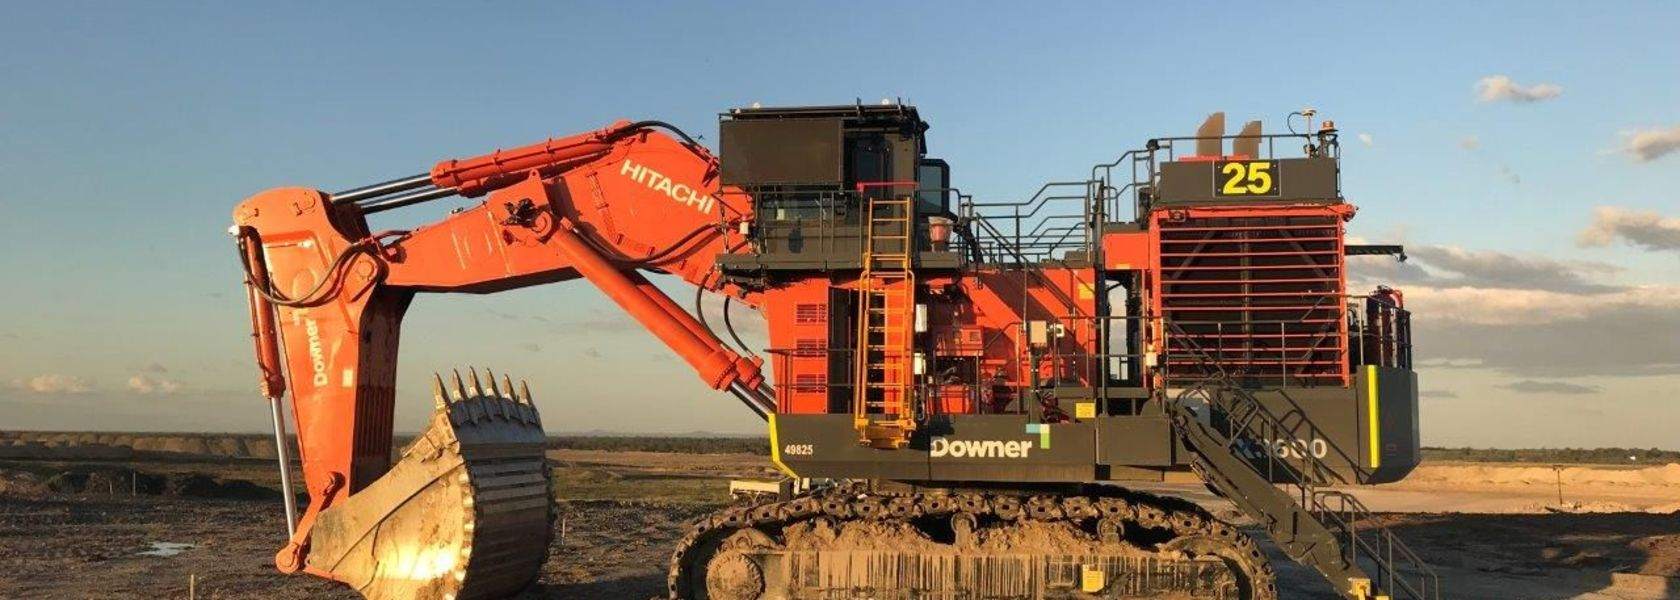 Downer puts in big order for Mineware monitoring tech